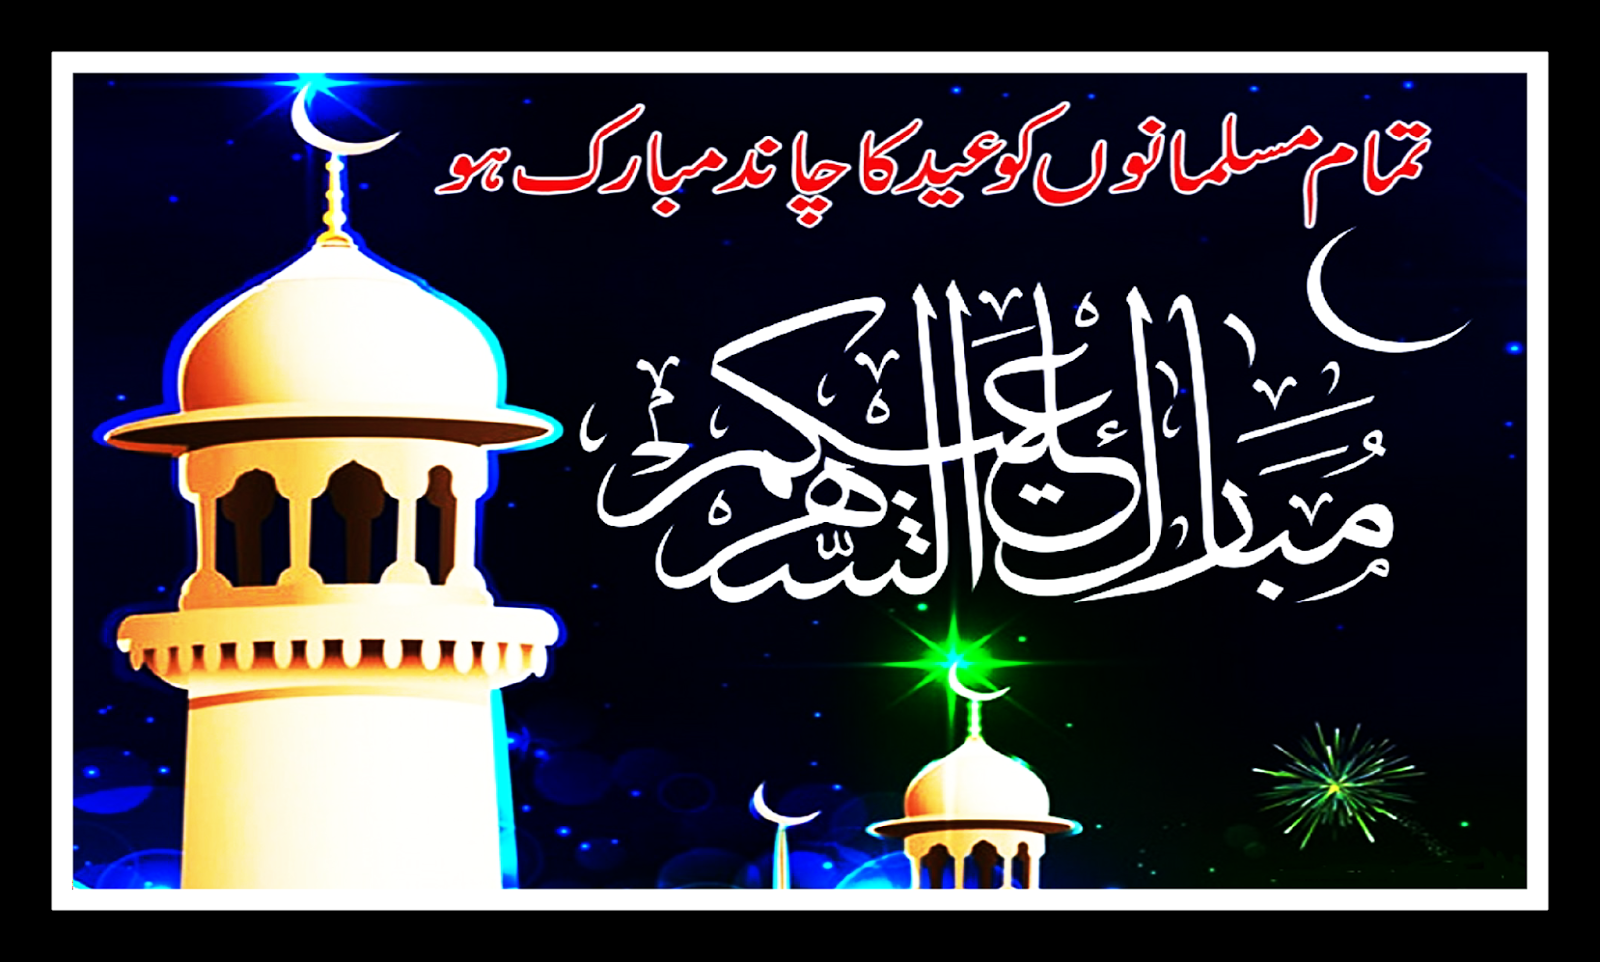 Eid Mubarak Messages Happy Eid Wishes and Greetings 2019